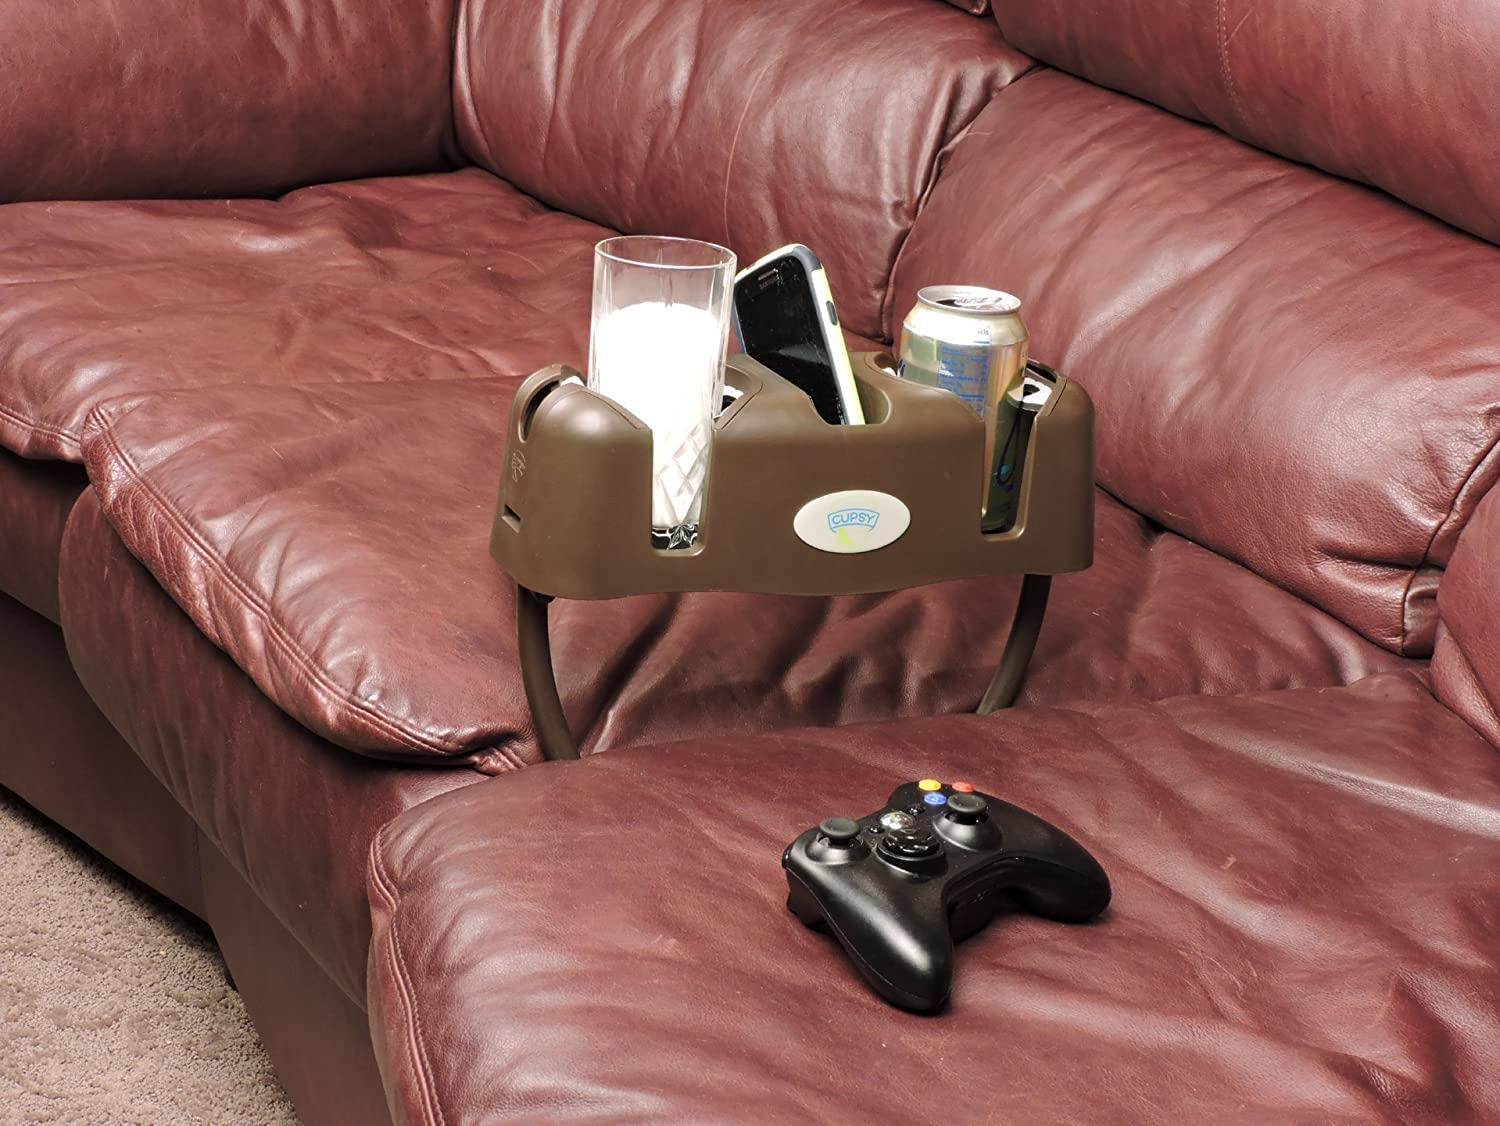 Amazon.com Cupsy Sofa and Couch Armchair Drink Organizer and Recliner Drink Caddy with Removable Legs - Multiple Colors Kitchen u0026 Dining & Amazon.com: Cupsy Sofa and Couch Armchair Drink Organizer and ... islam-shia.org